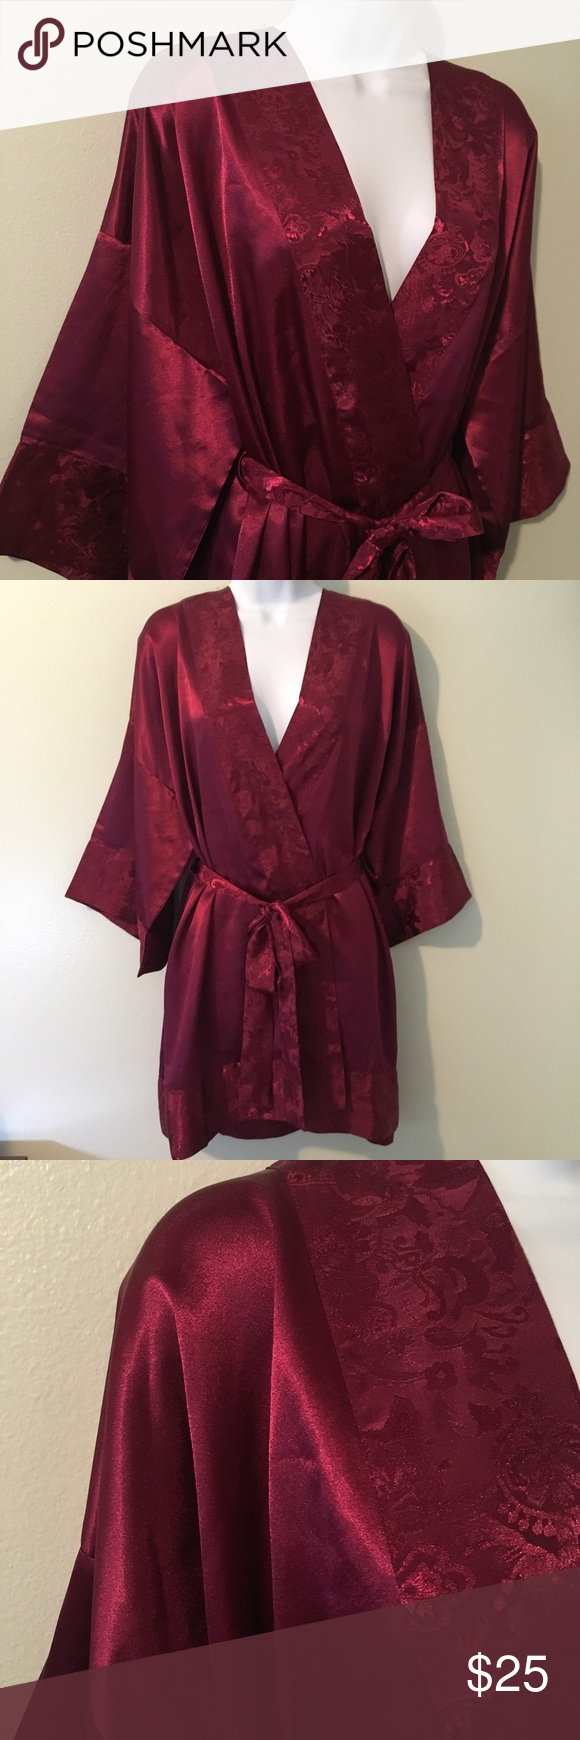 """Victoria's Secret Kimono One-Day Sale Victoria's Secret kimono, burgundy red with paisley patterning on the cuff and hem. So pretty! Ni damage; no stains, no snags, no rips. OSFA, 34"""" length (last photo is only to show the fit). Detached sash. Bundle with other items in my closet; you'll save more money and pay one shipping fee! Sign up in my closet to be notified of my new VS/PINK listings. Victoria's Secret Intimates & Sleepwear Robes"""